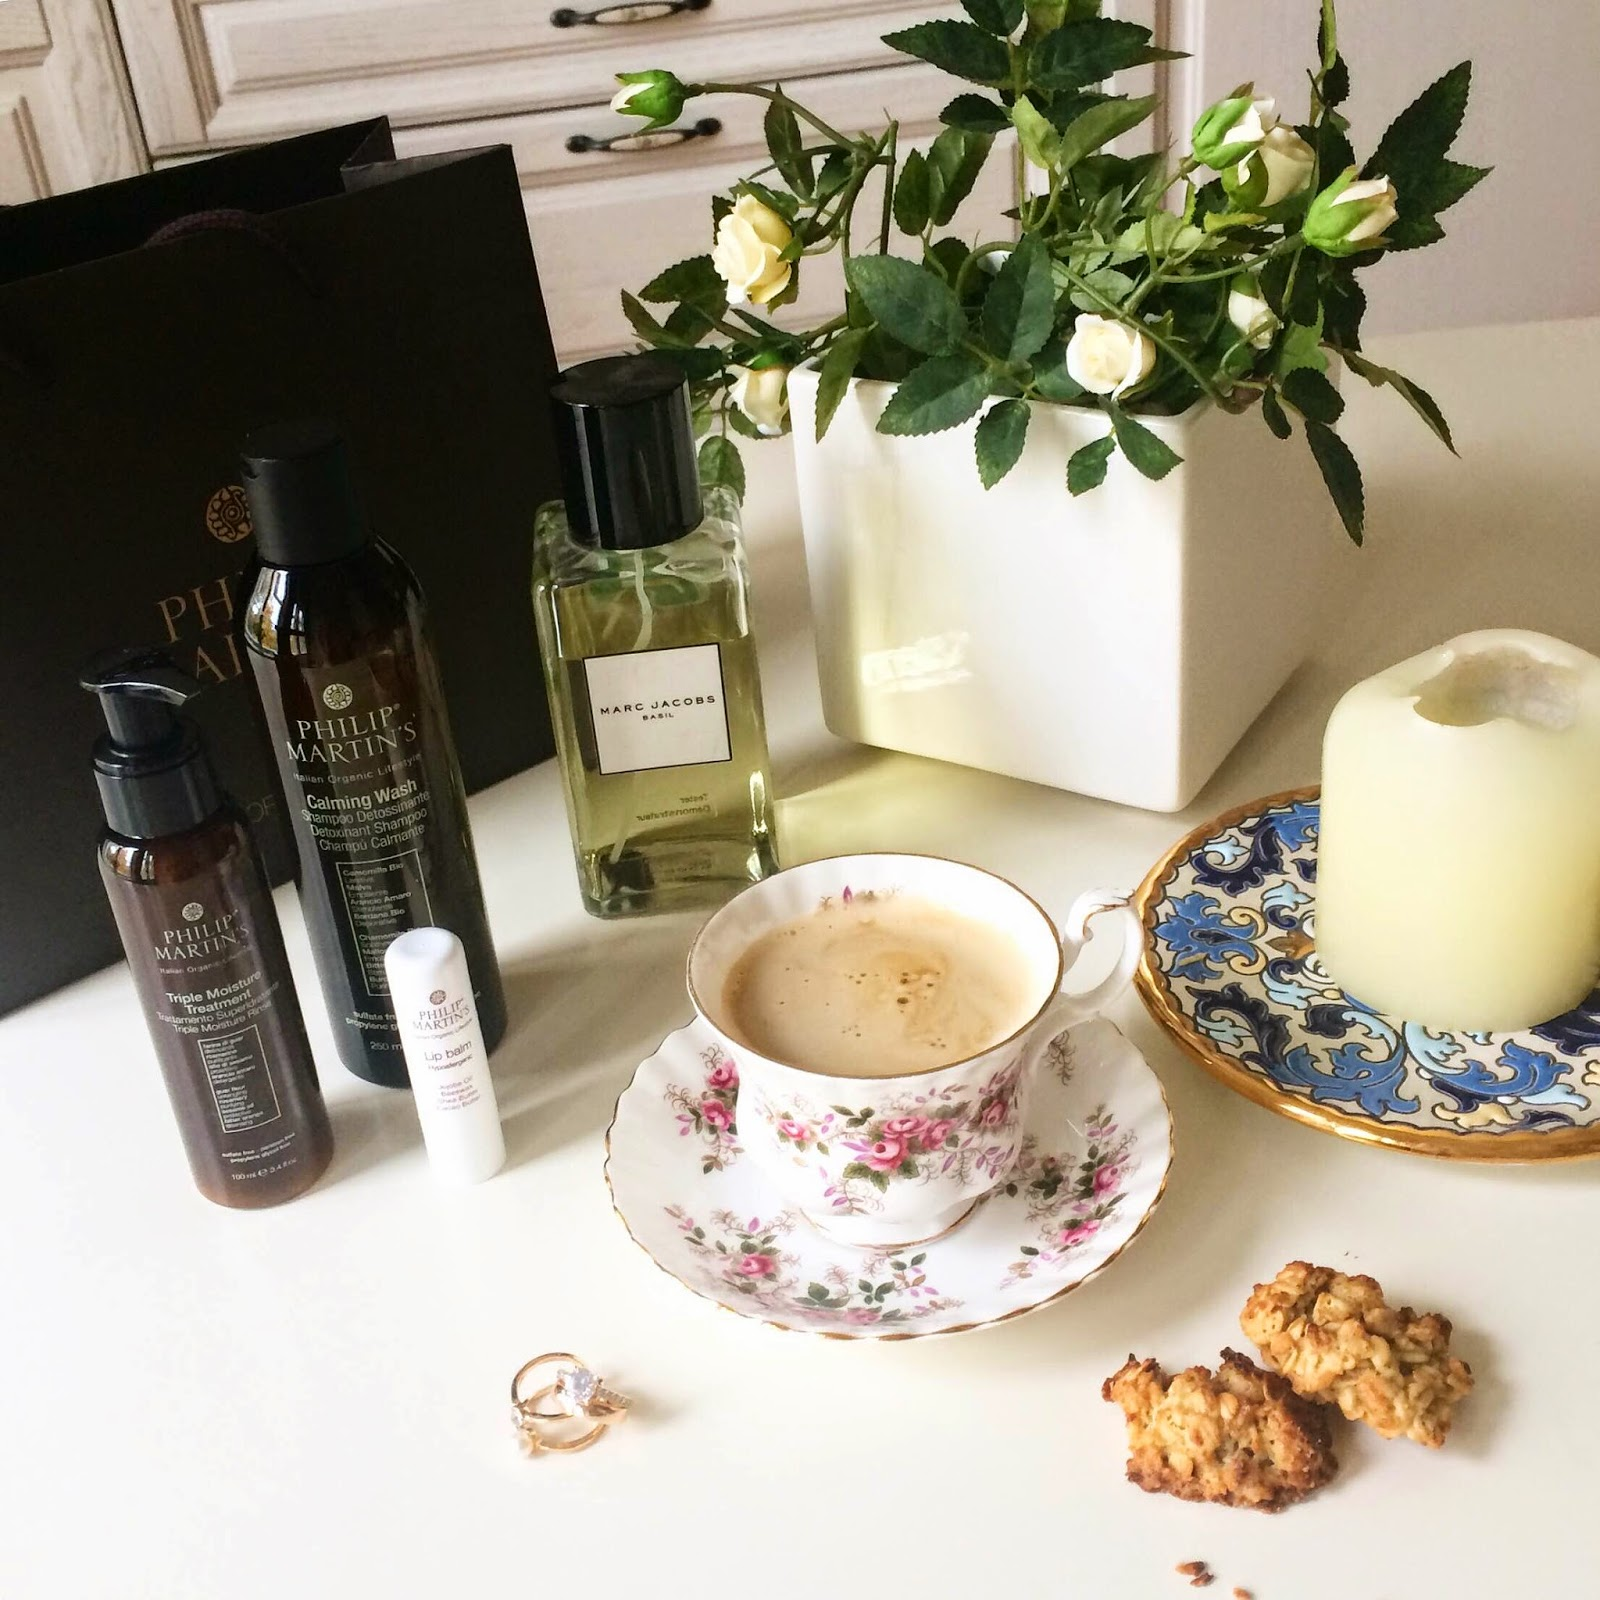 philip-martins-haircare-marc-jacobs-parfume-espresso-cofee-table